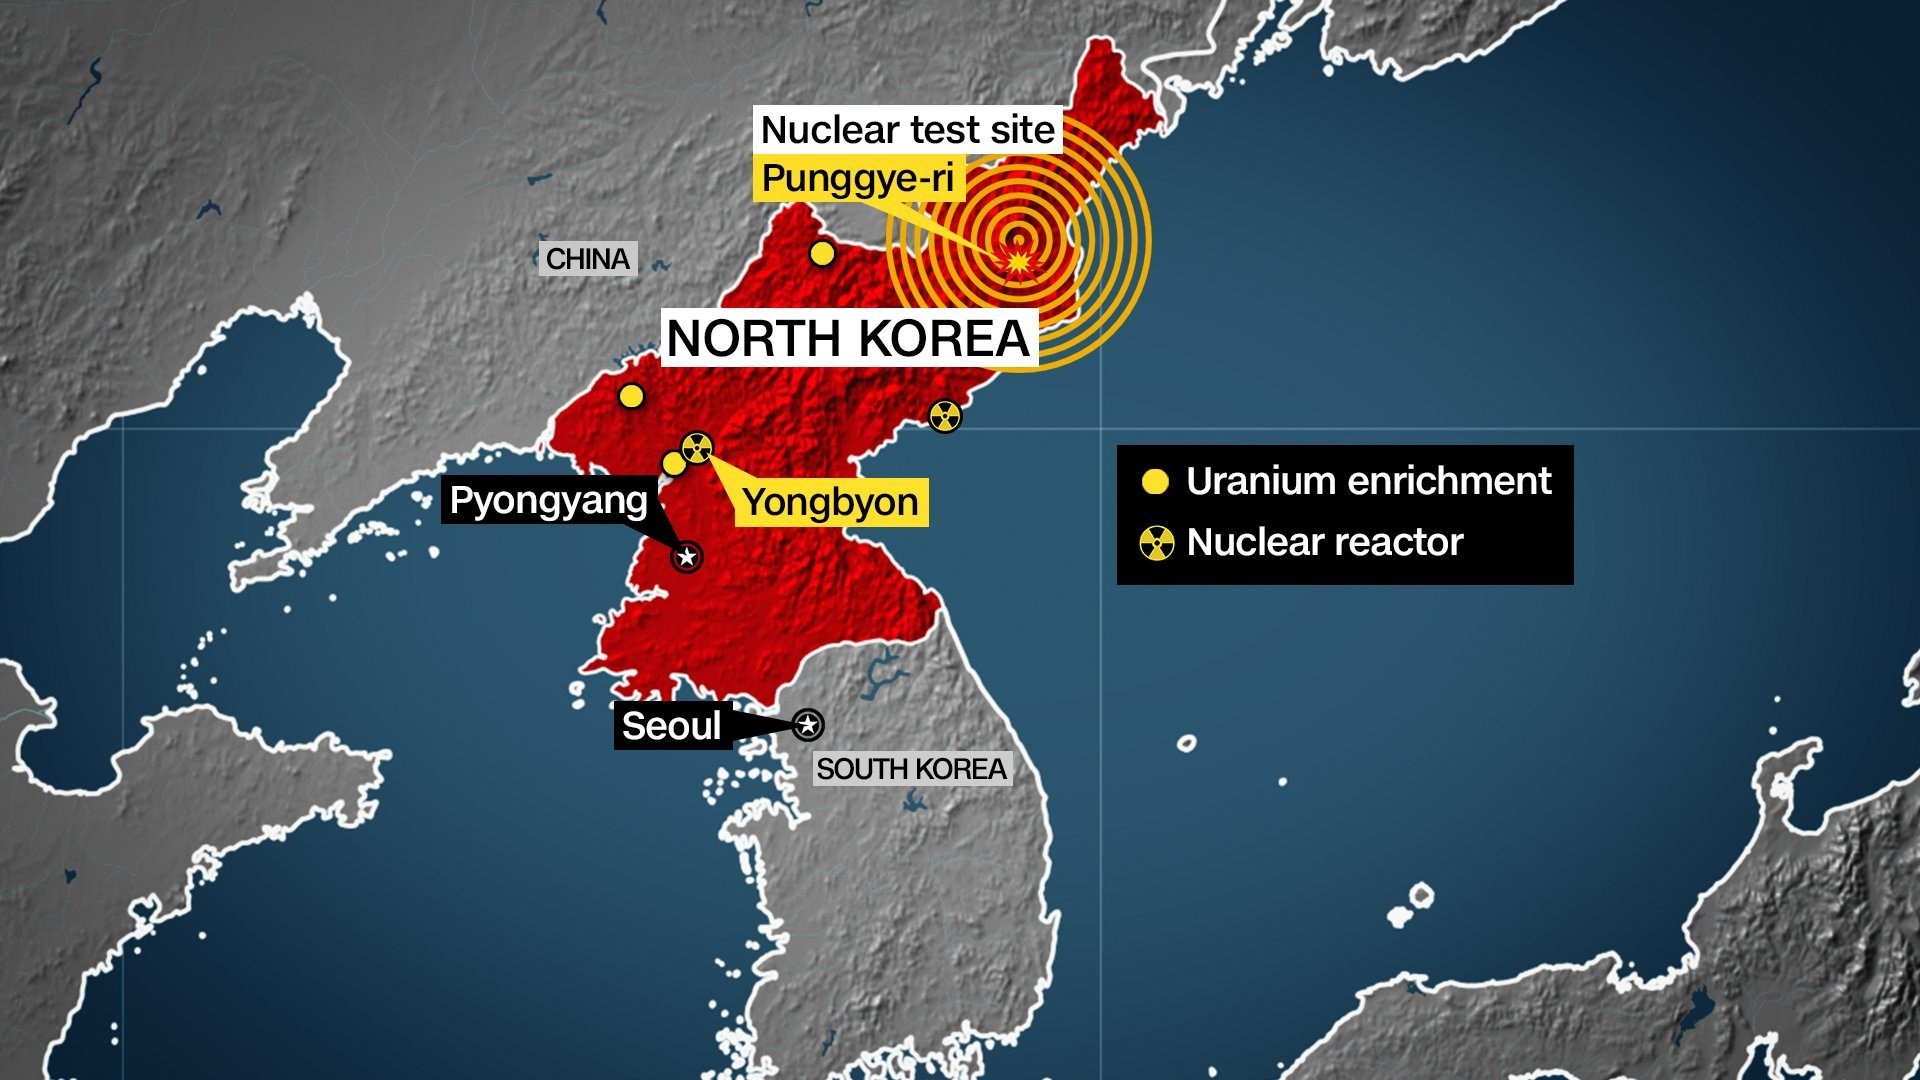 The US Geological Survey says a magnitude 3.5 earthquake struck near the nuclear site Punggye-ri in North Korea. It's unclear whether a nuclear test caused the seismic activity